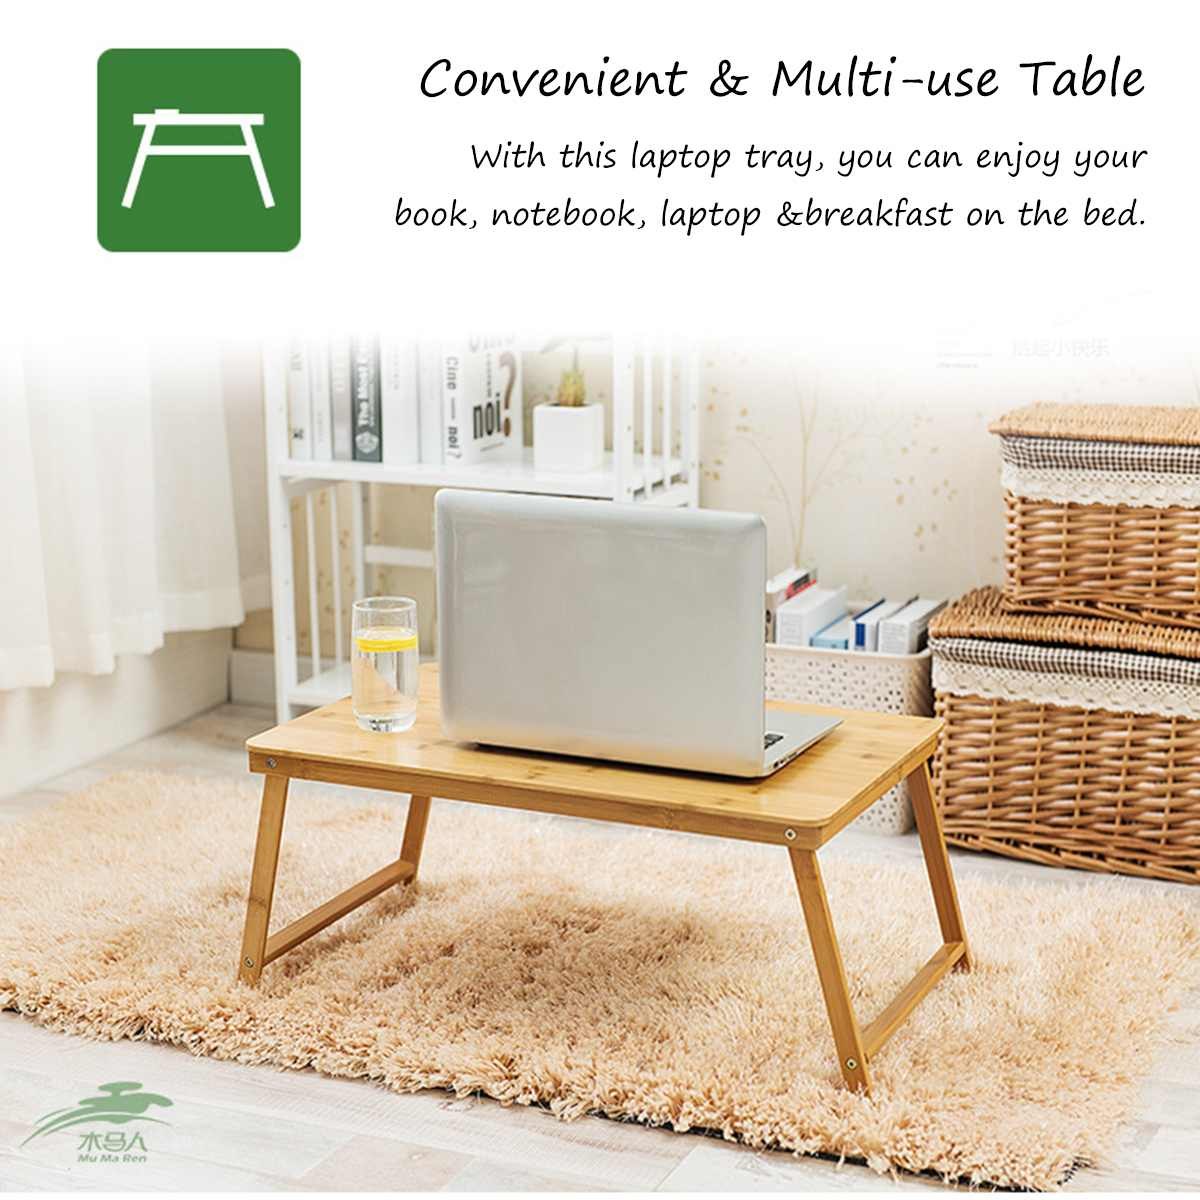 Portable Folding Bamboo Laptop Table Sofa Bed Office Laptop Stand Desk Bed Table For Computer Notebook Books Snacking Tray